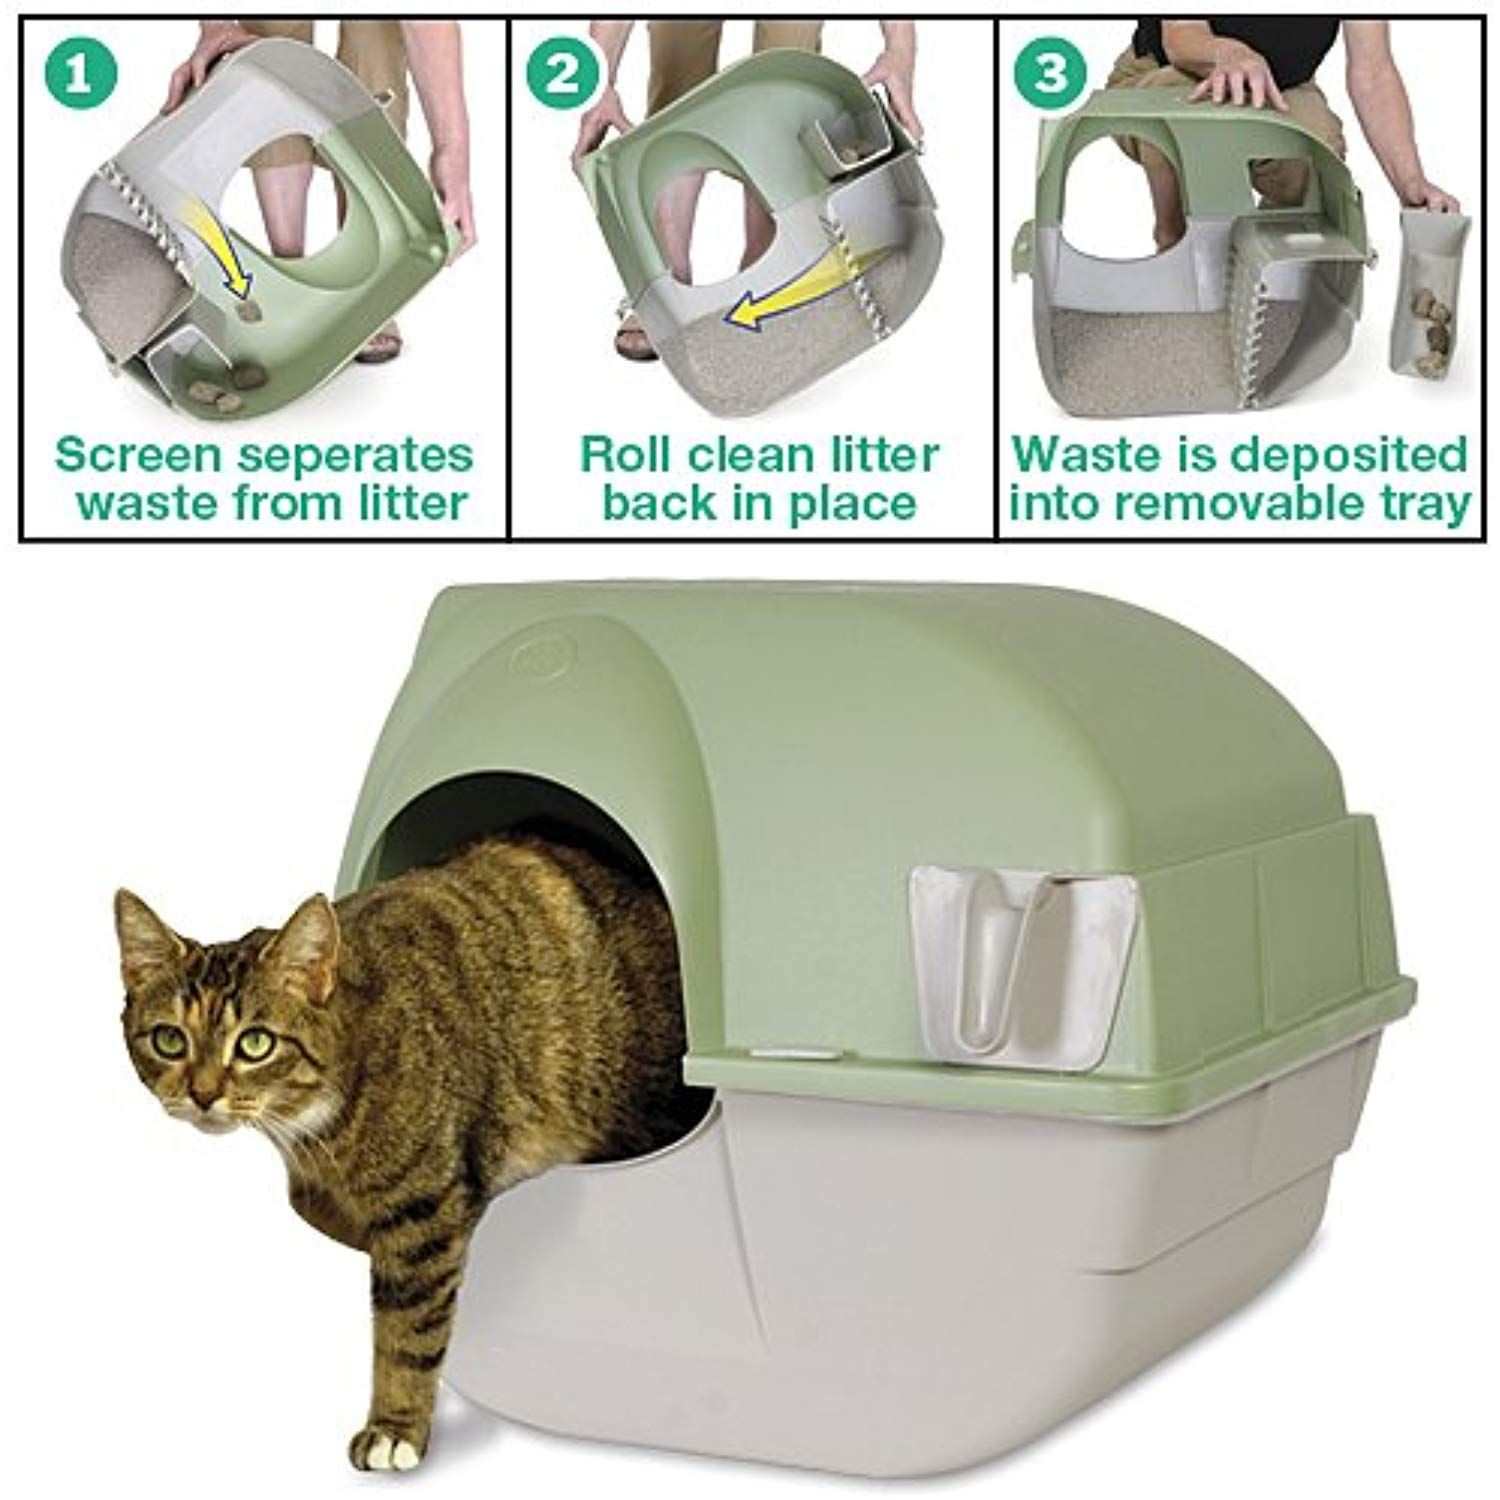 Omega Paw Self Cleaning Litter Box Click Image To Review More Details This Is An Affiliate Link Cat Litter Cleaning Kitty Litter Litter Box